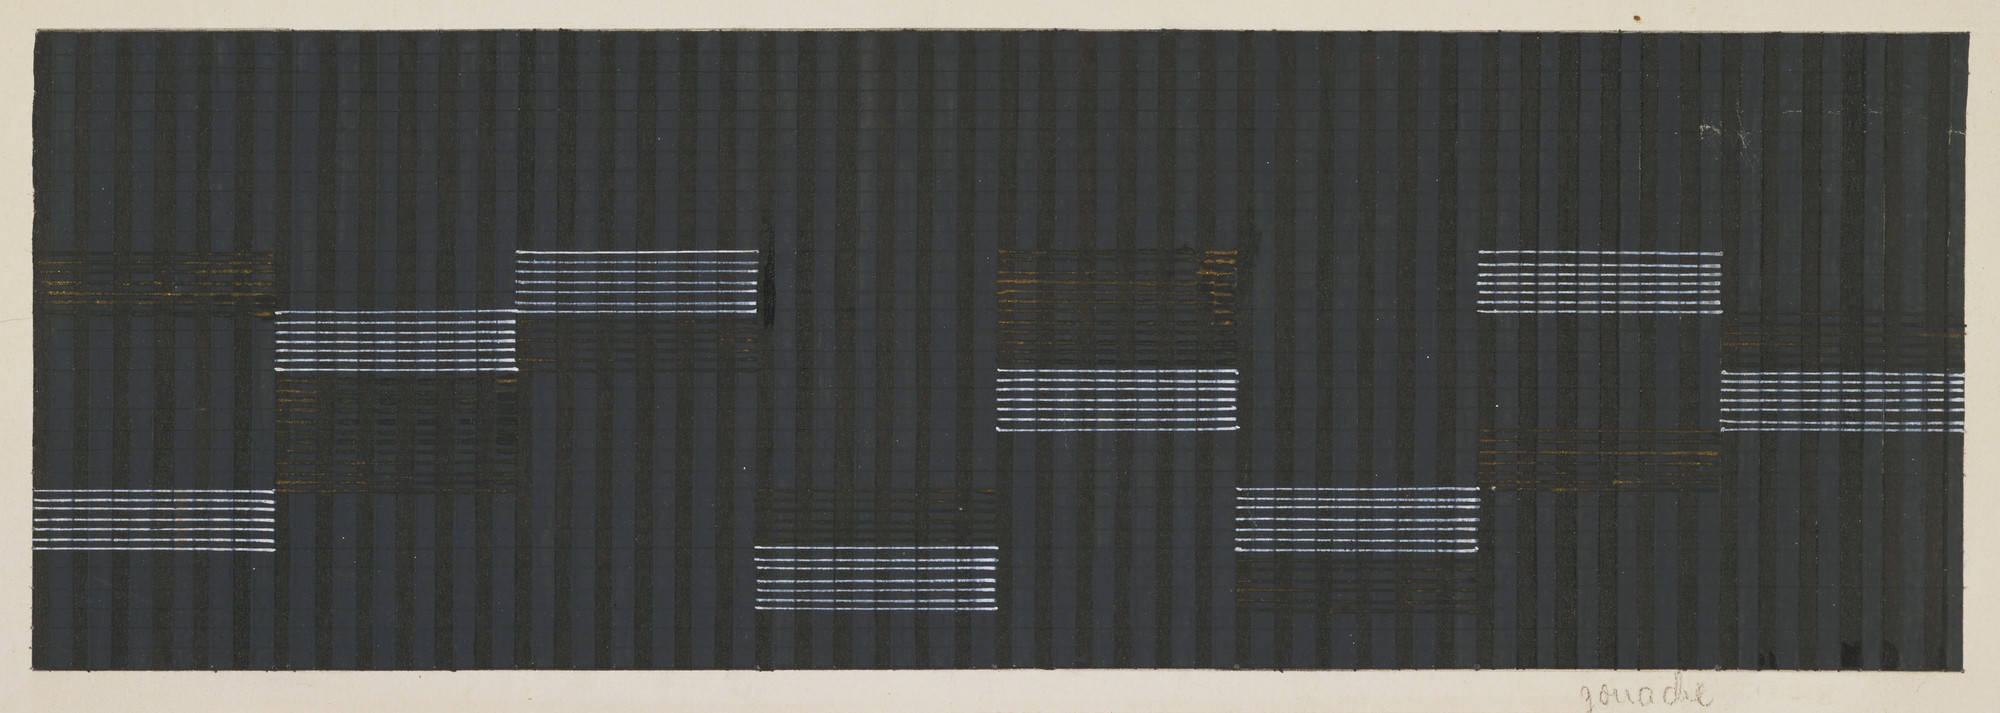 Anni Albers. Design for Theater Curtain, Oppeln. 1928